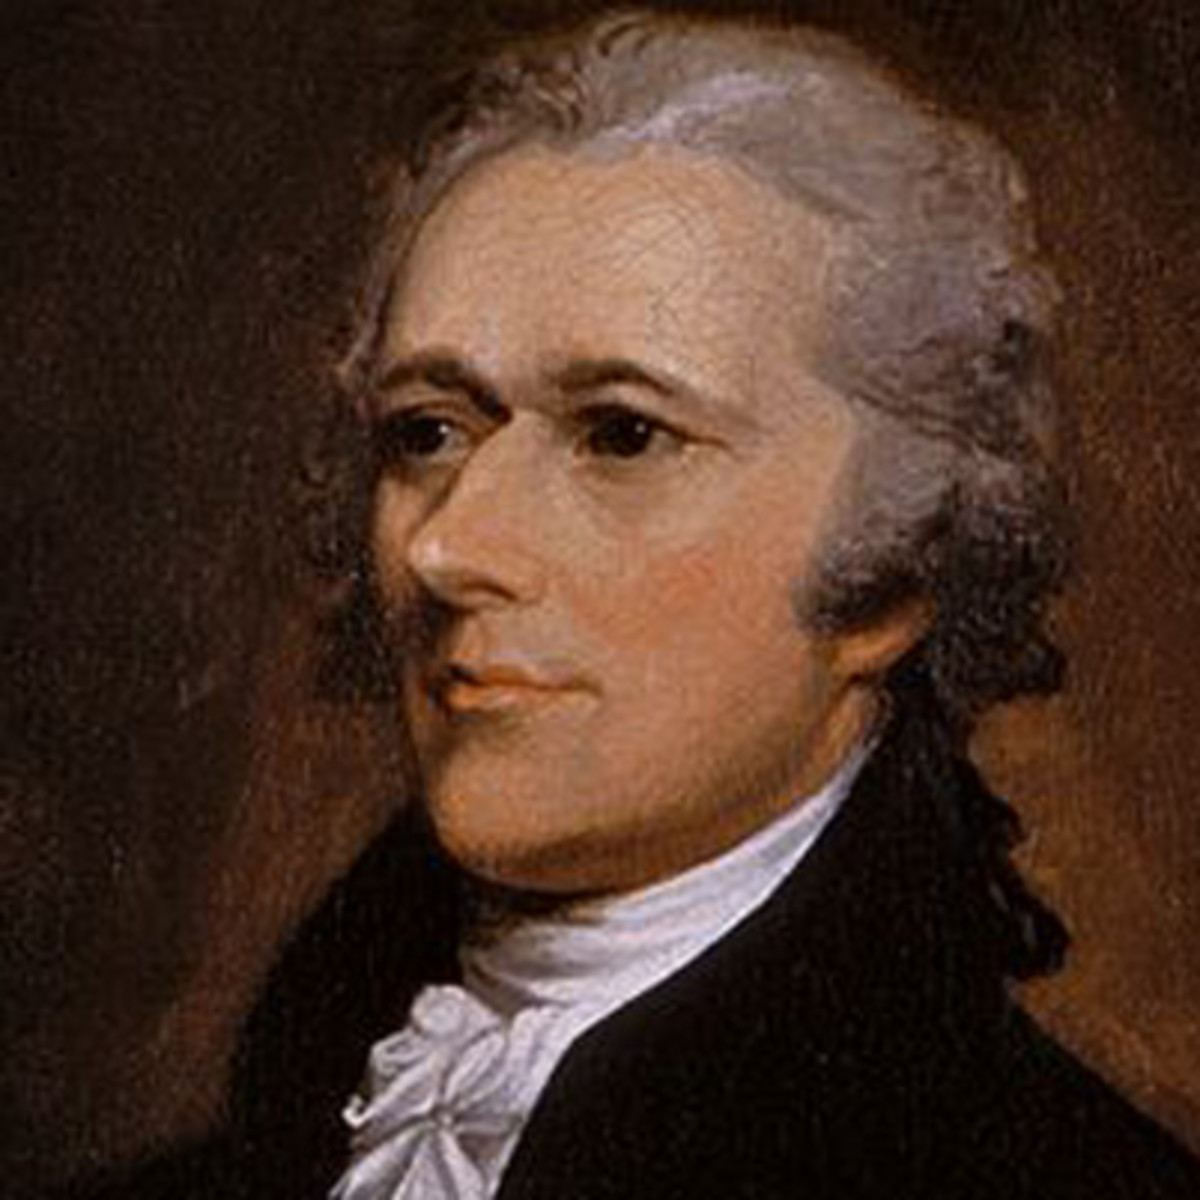 alexander hamilton political scientist government official alexander hamilton political scientist government official journalist military leader economist lawyer com